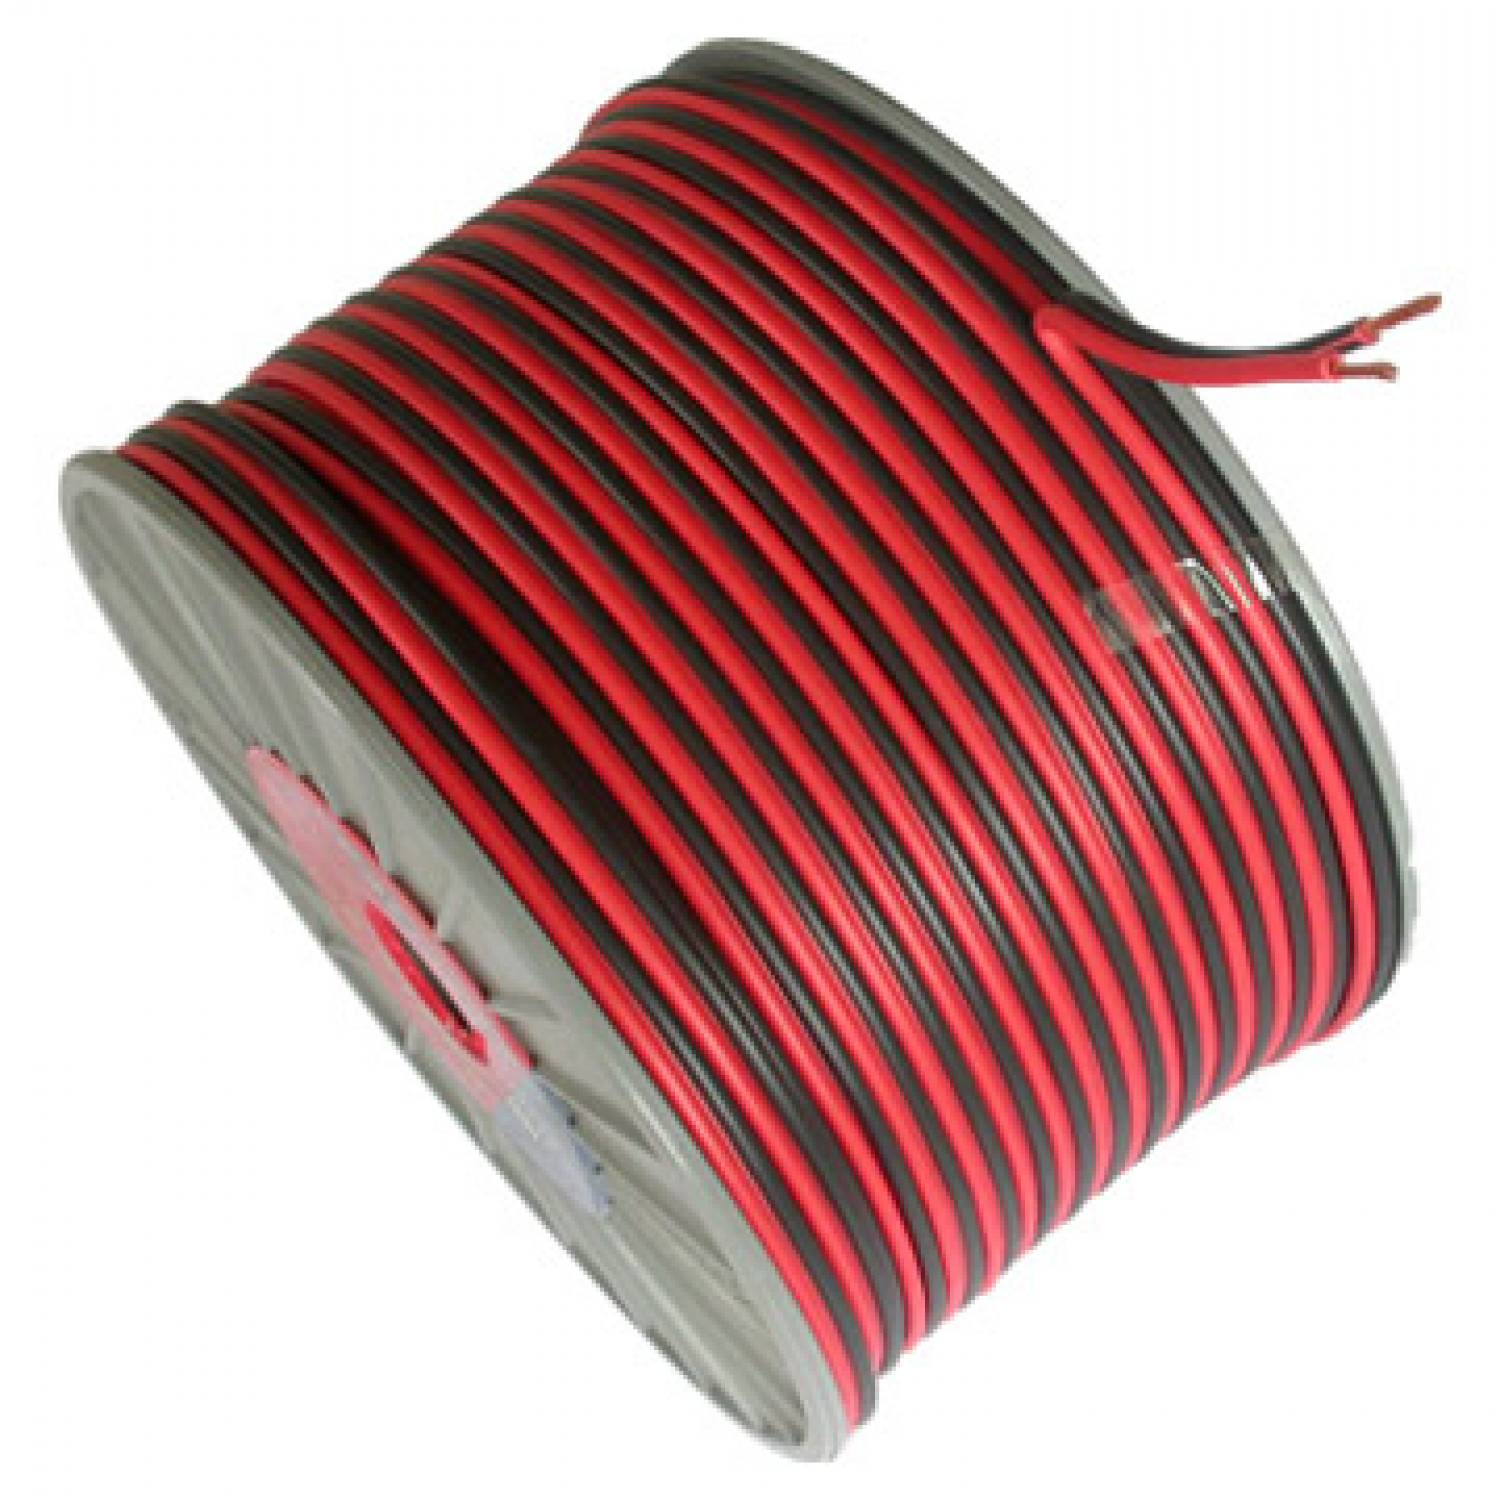 Electric wire (2 veins) per meter